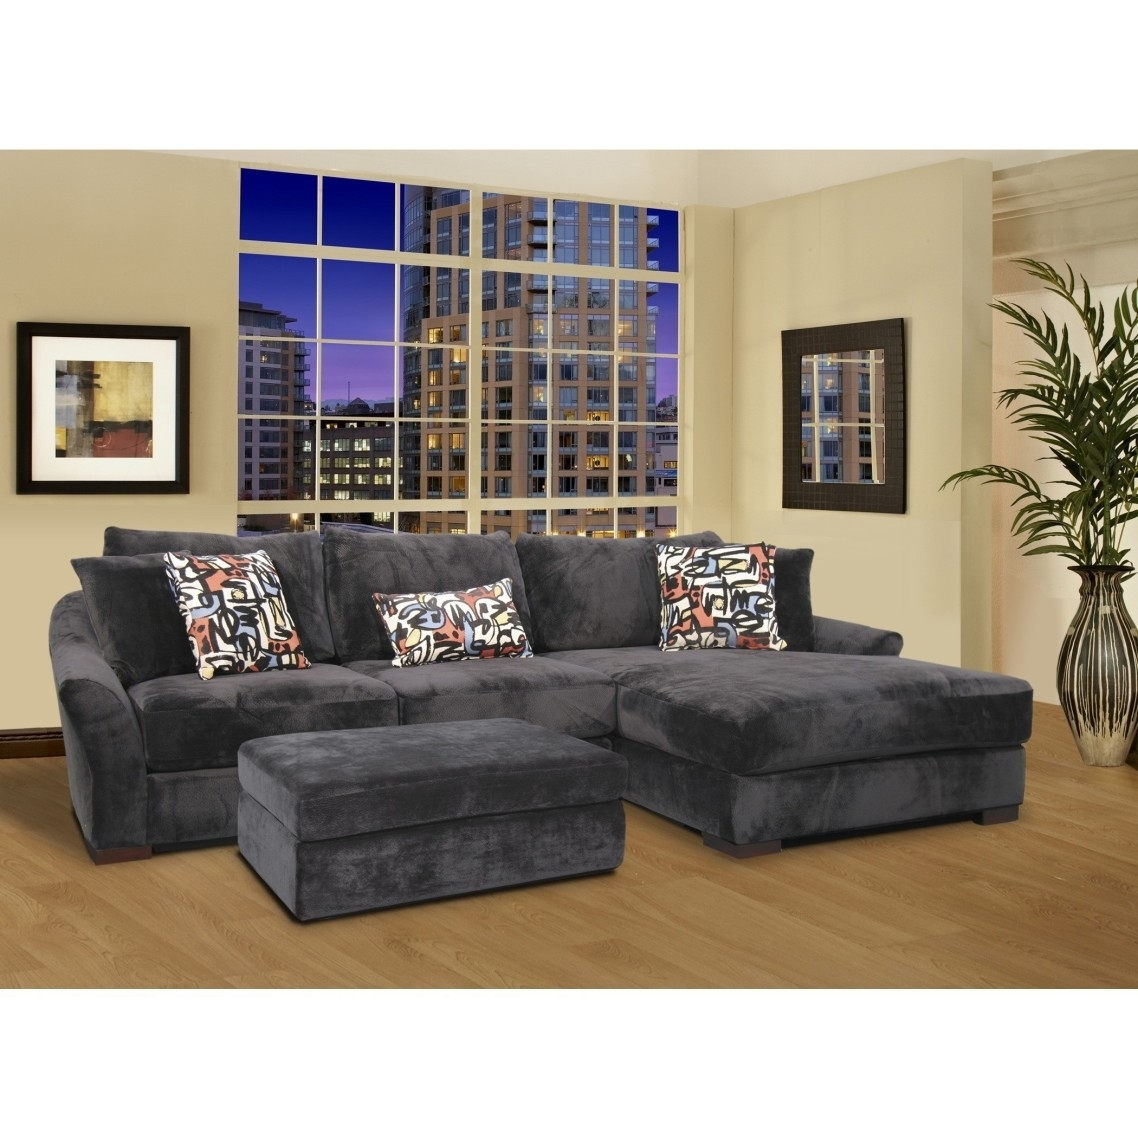 Gray Velvet Oversized Sectional Sleeper Sofa With Left Chaise Pertaining To Sectional Sleeper Sofas With Ottoman (View 8 of 15)